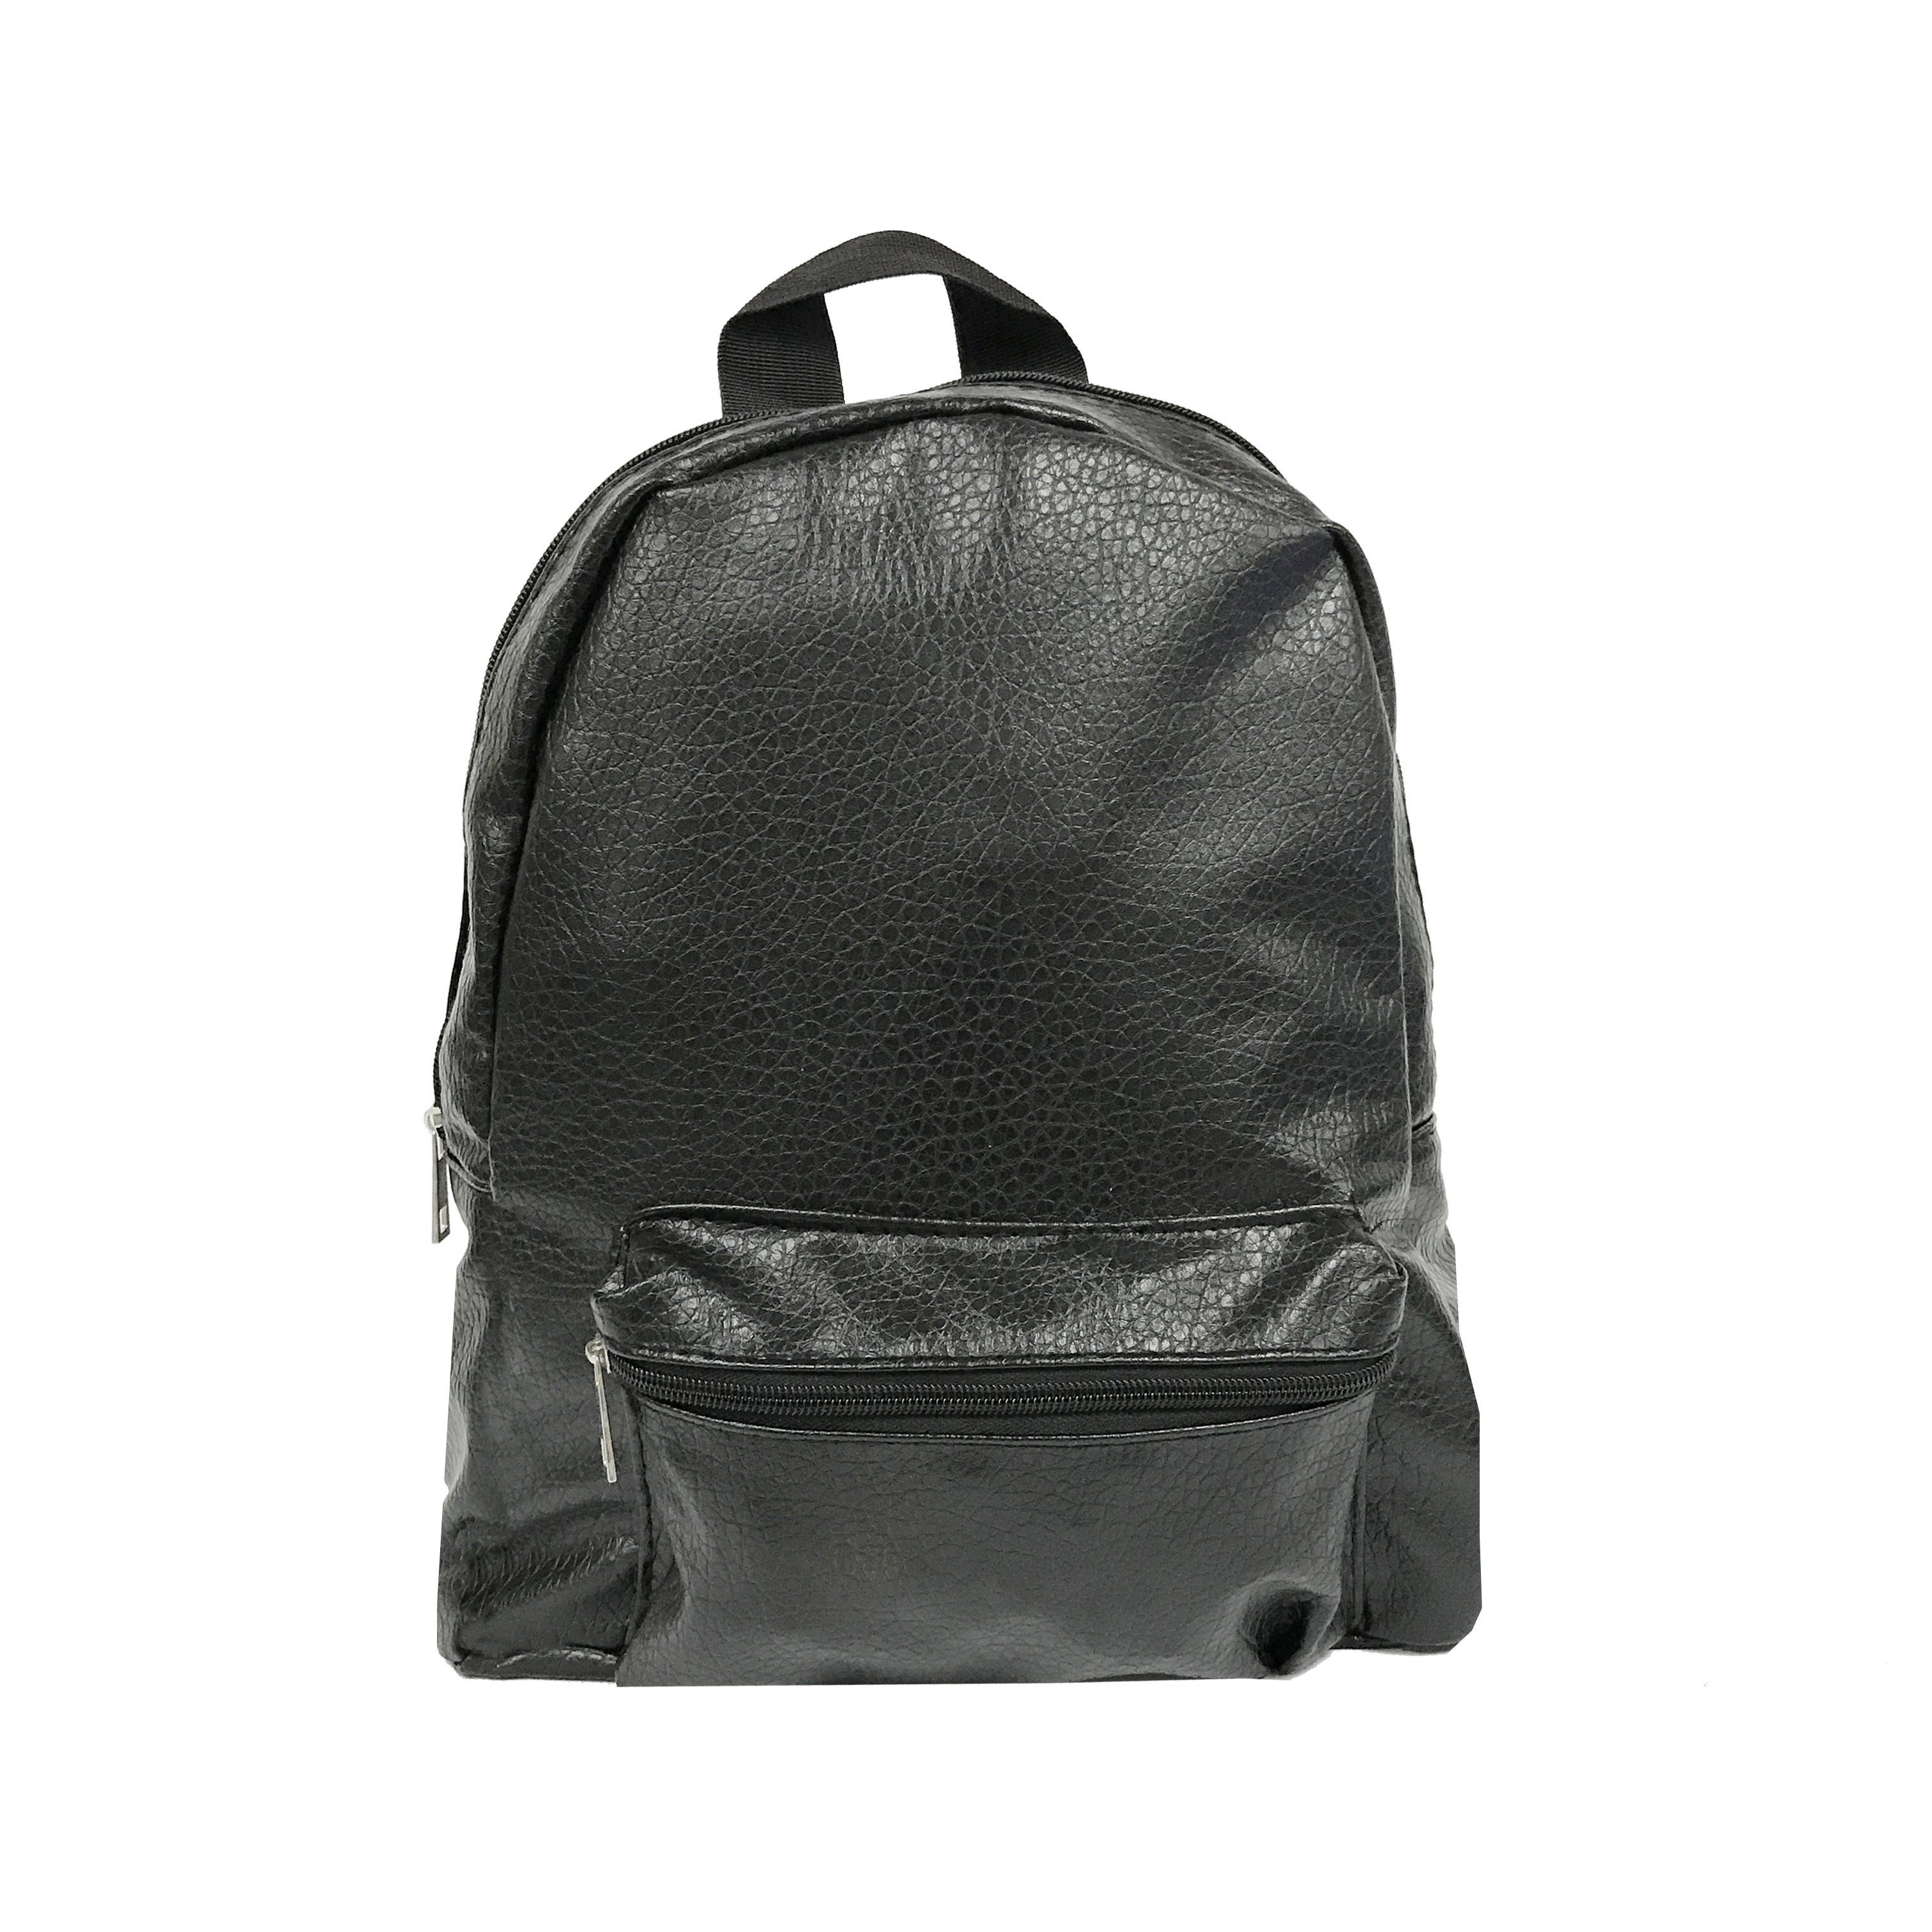 a189354e1ad Faux Leather Fashion Backpack - CEAGESP